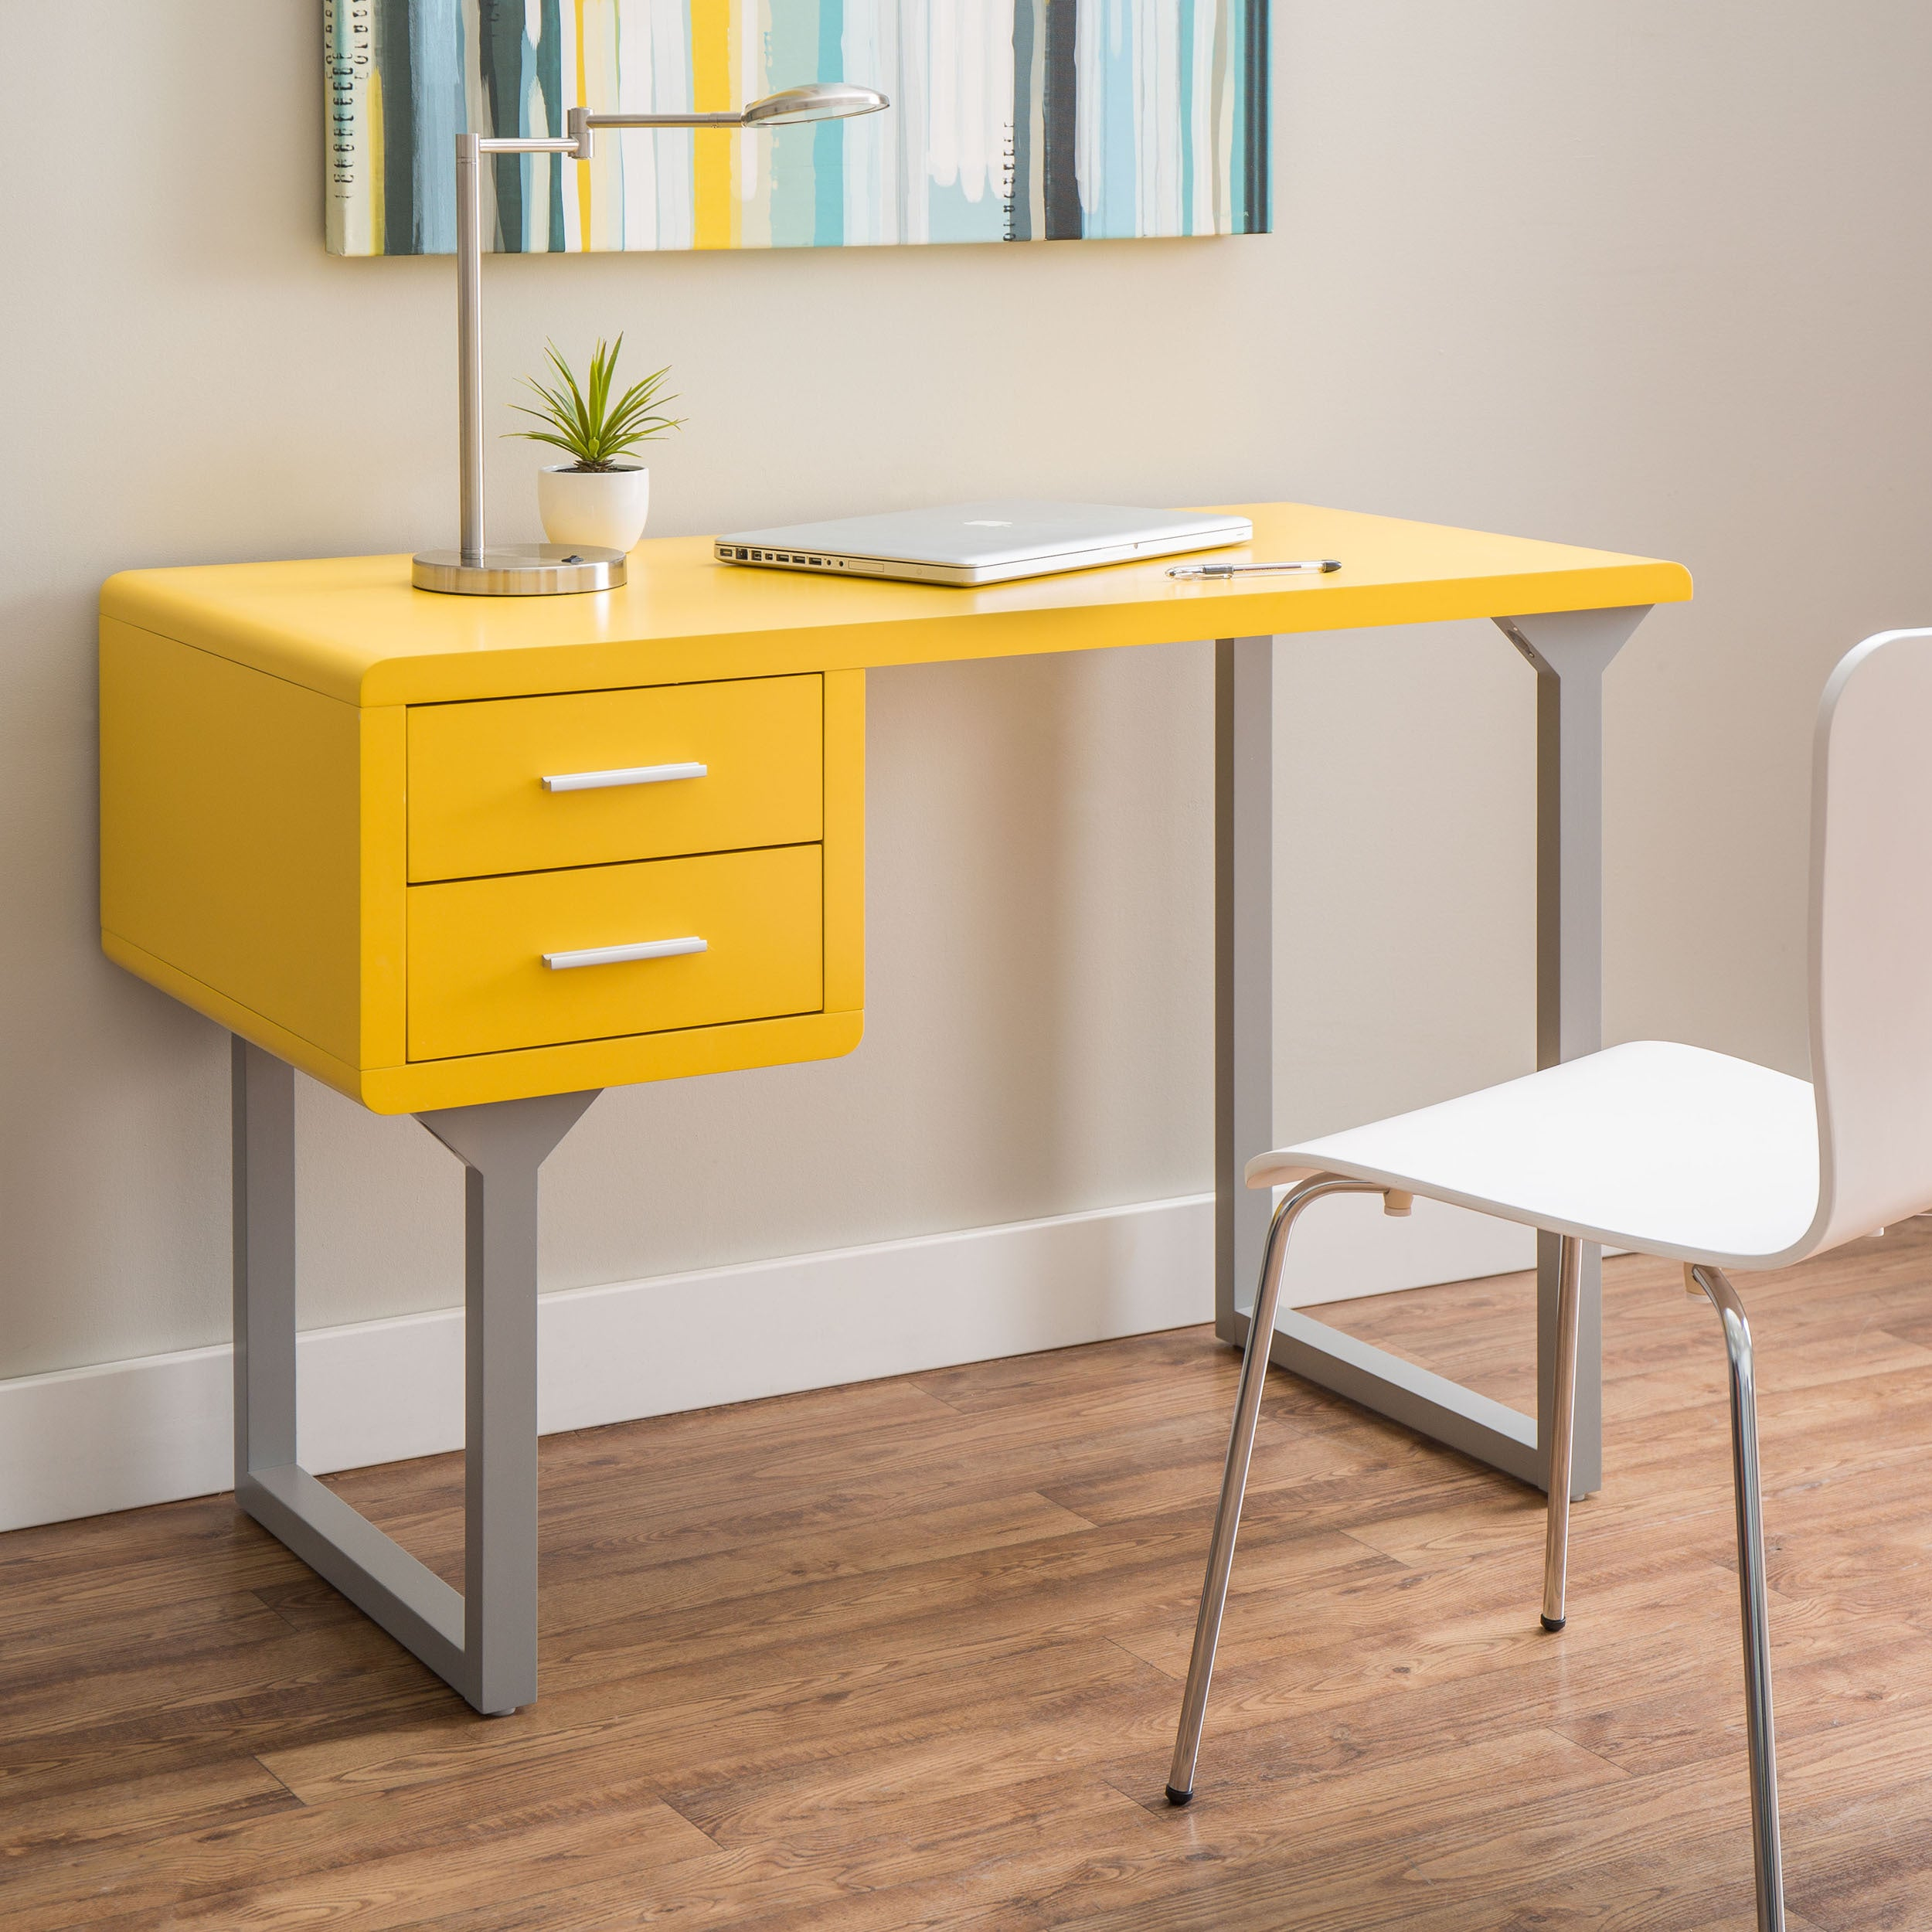 ledu articulating product vintage yellow lamp desk chairish